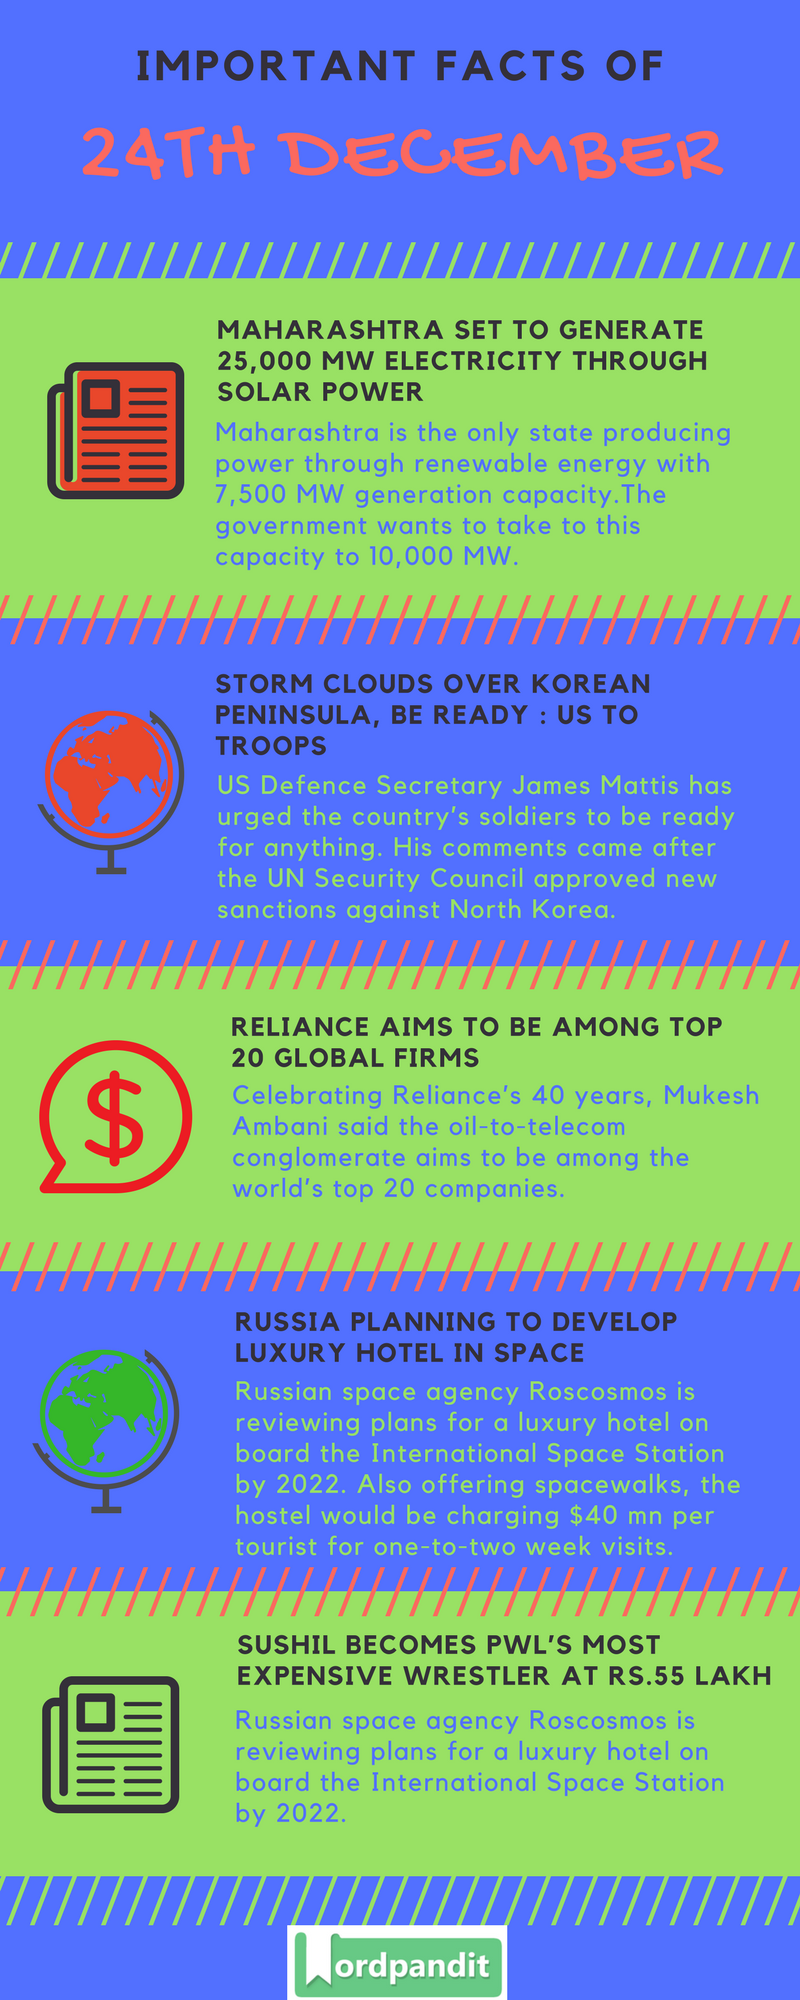 Daily-Current-Affairs-24-december-2017-Current-Affairs-Quiz-december-25-2017-Current-Affairs-Infographic